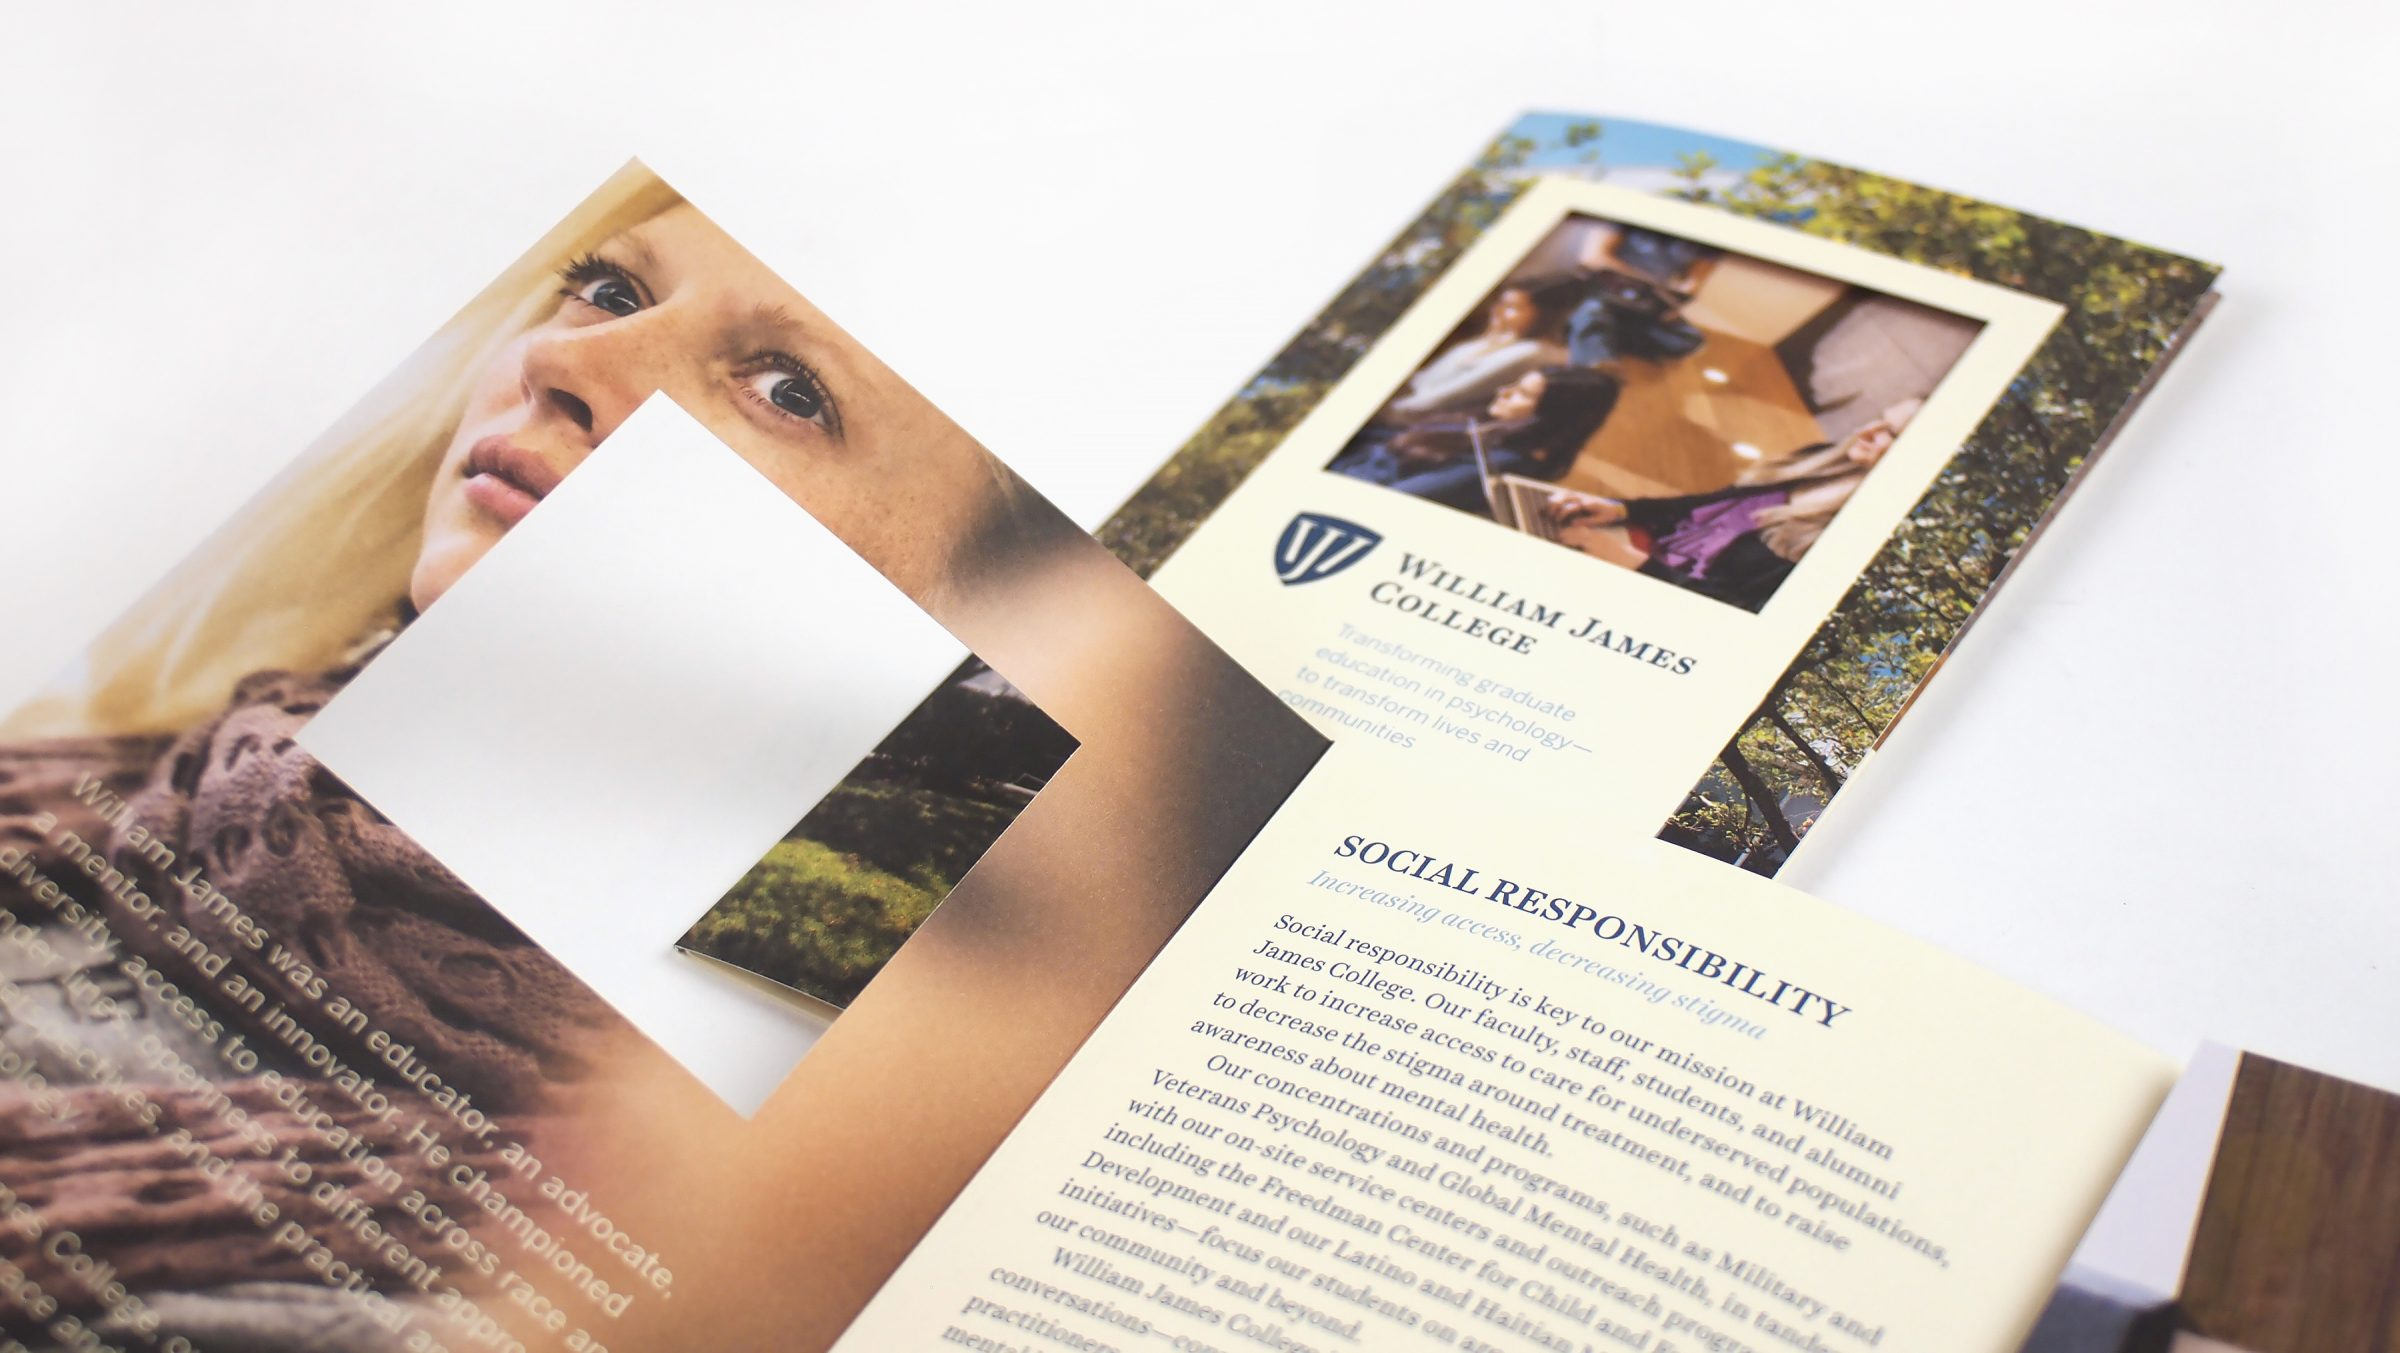 William James College brochure cover and interior: Social Responsibility